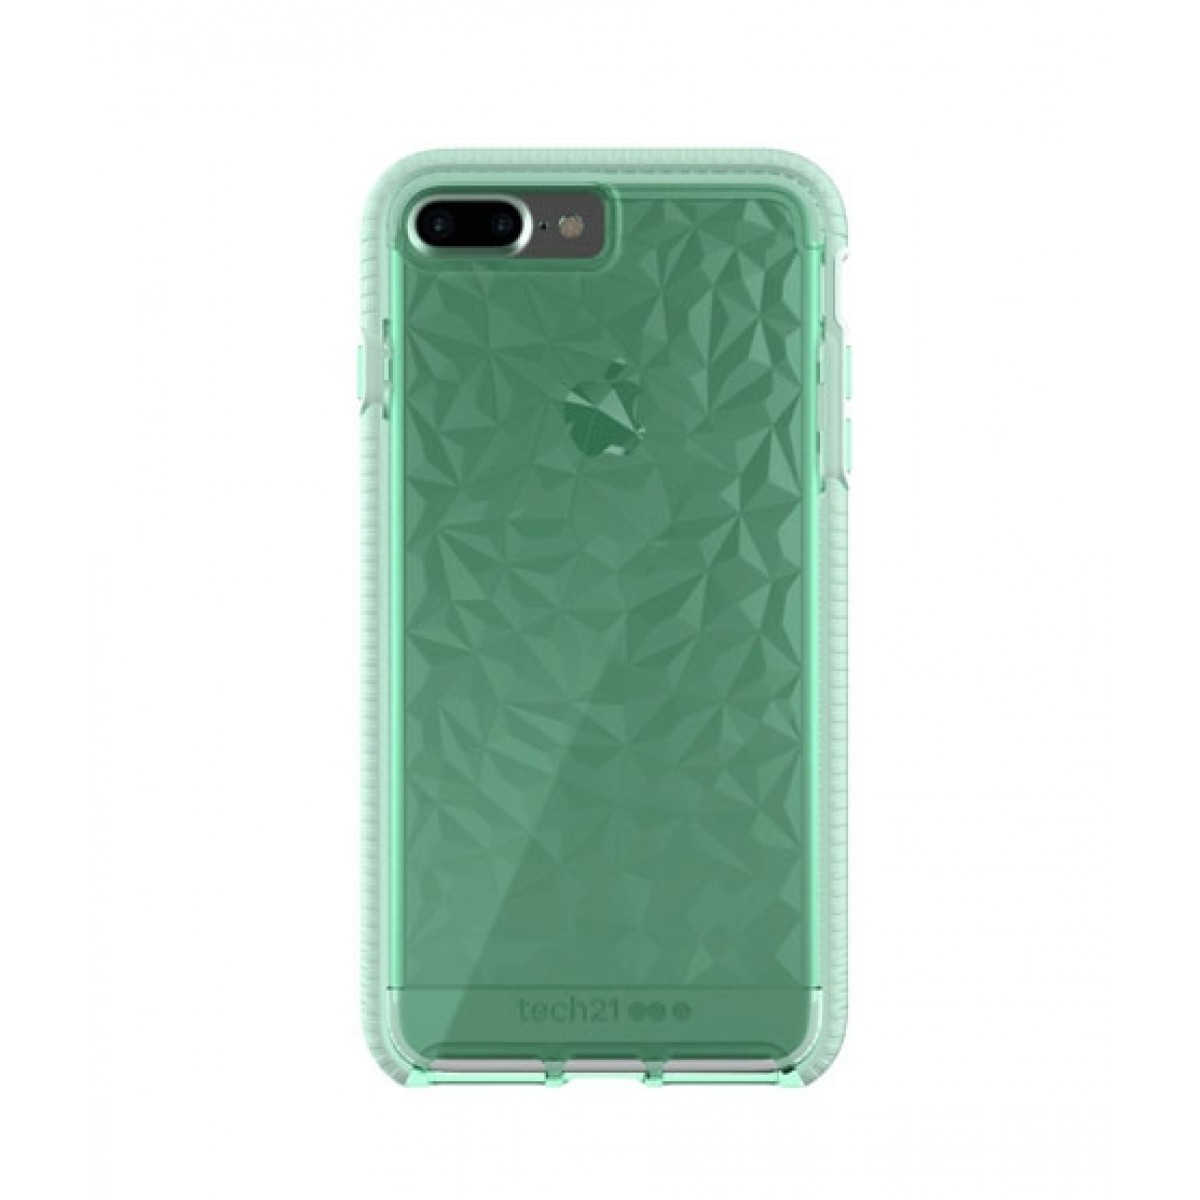 new style b2ae4 1e8fa Reviews for Tech21 Evo Gem Case For iPhone 8 Plus Price in Pakistan ...